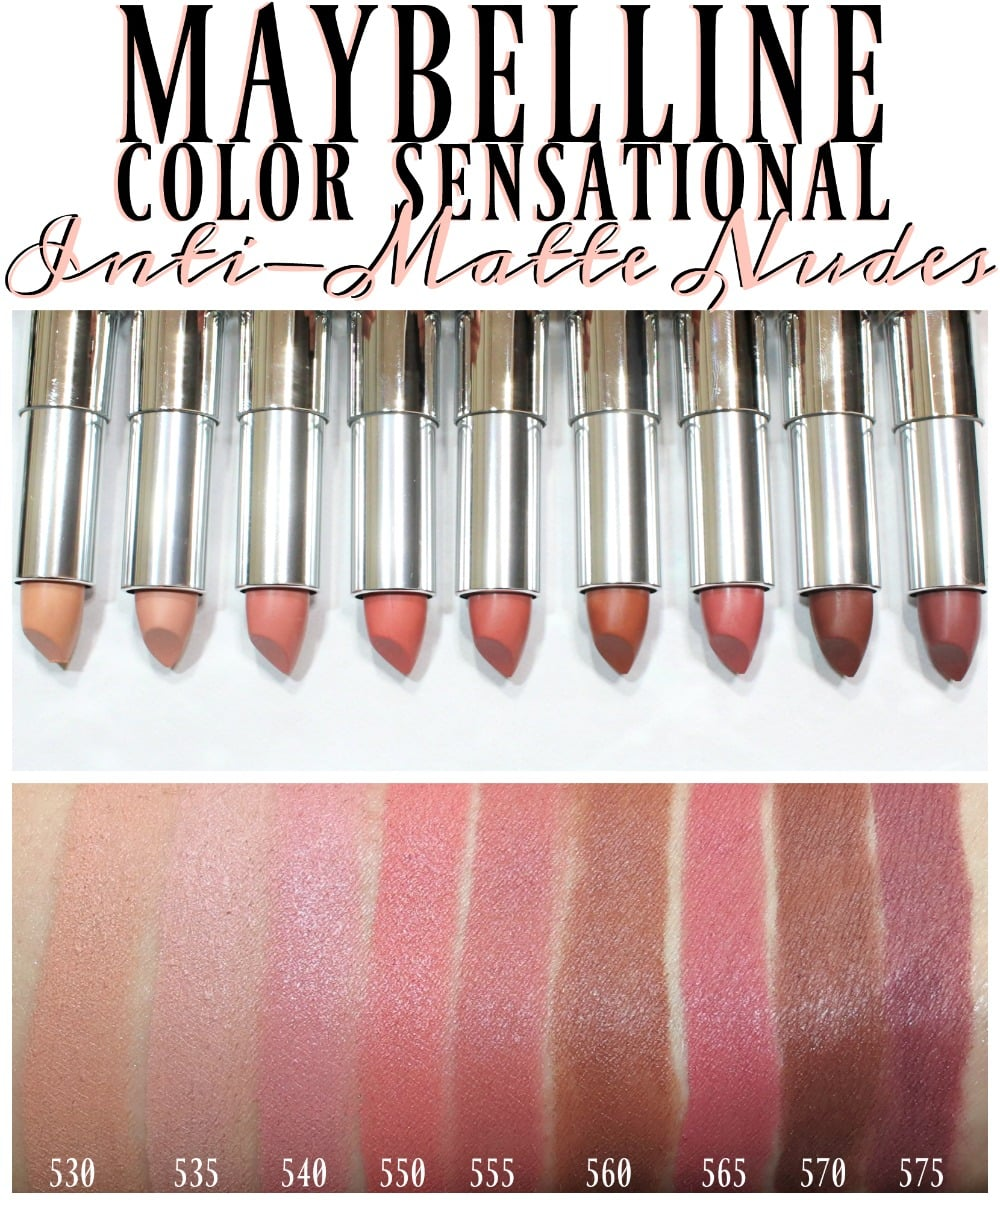 12 Sensational Schemes That Are: Maybelline Color Sensational Inti-Matte Nudes Lipstick